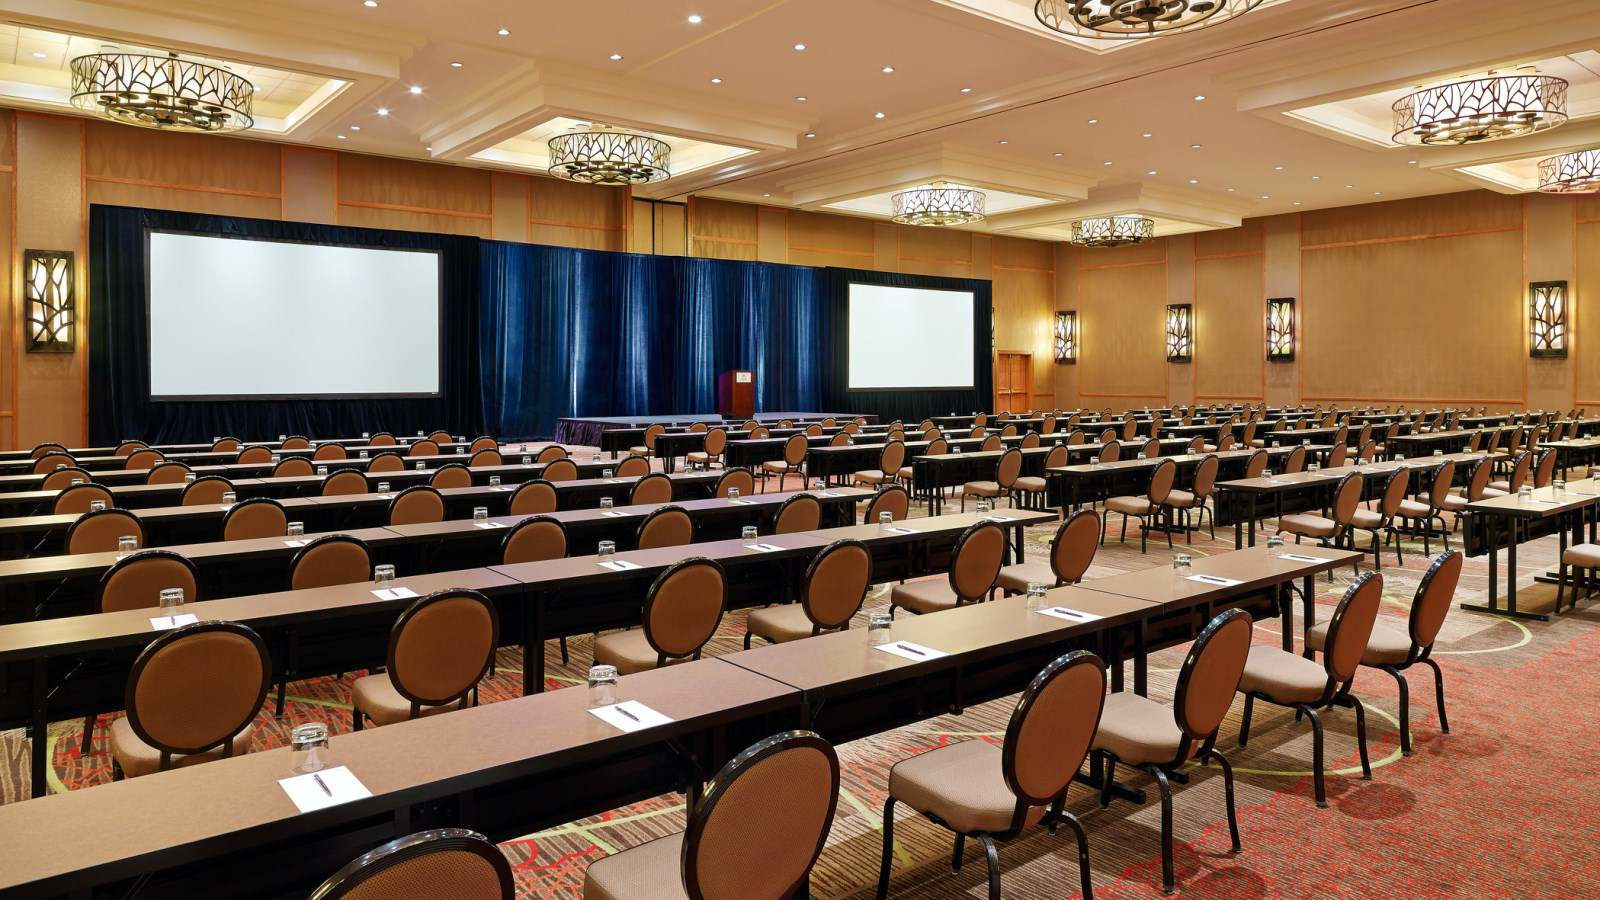 Sheraton Denver Downtown Hotel - Grand Ballroom